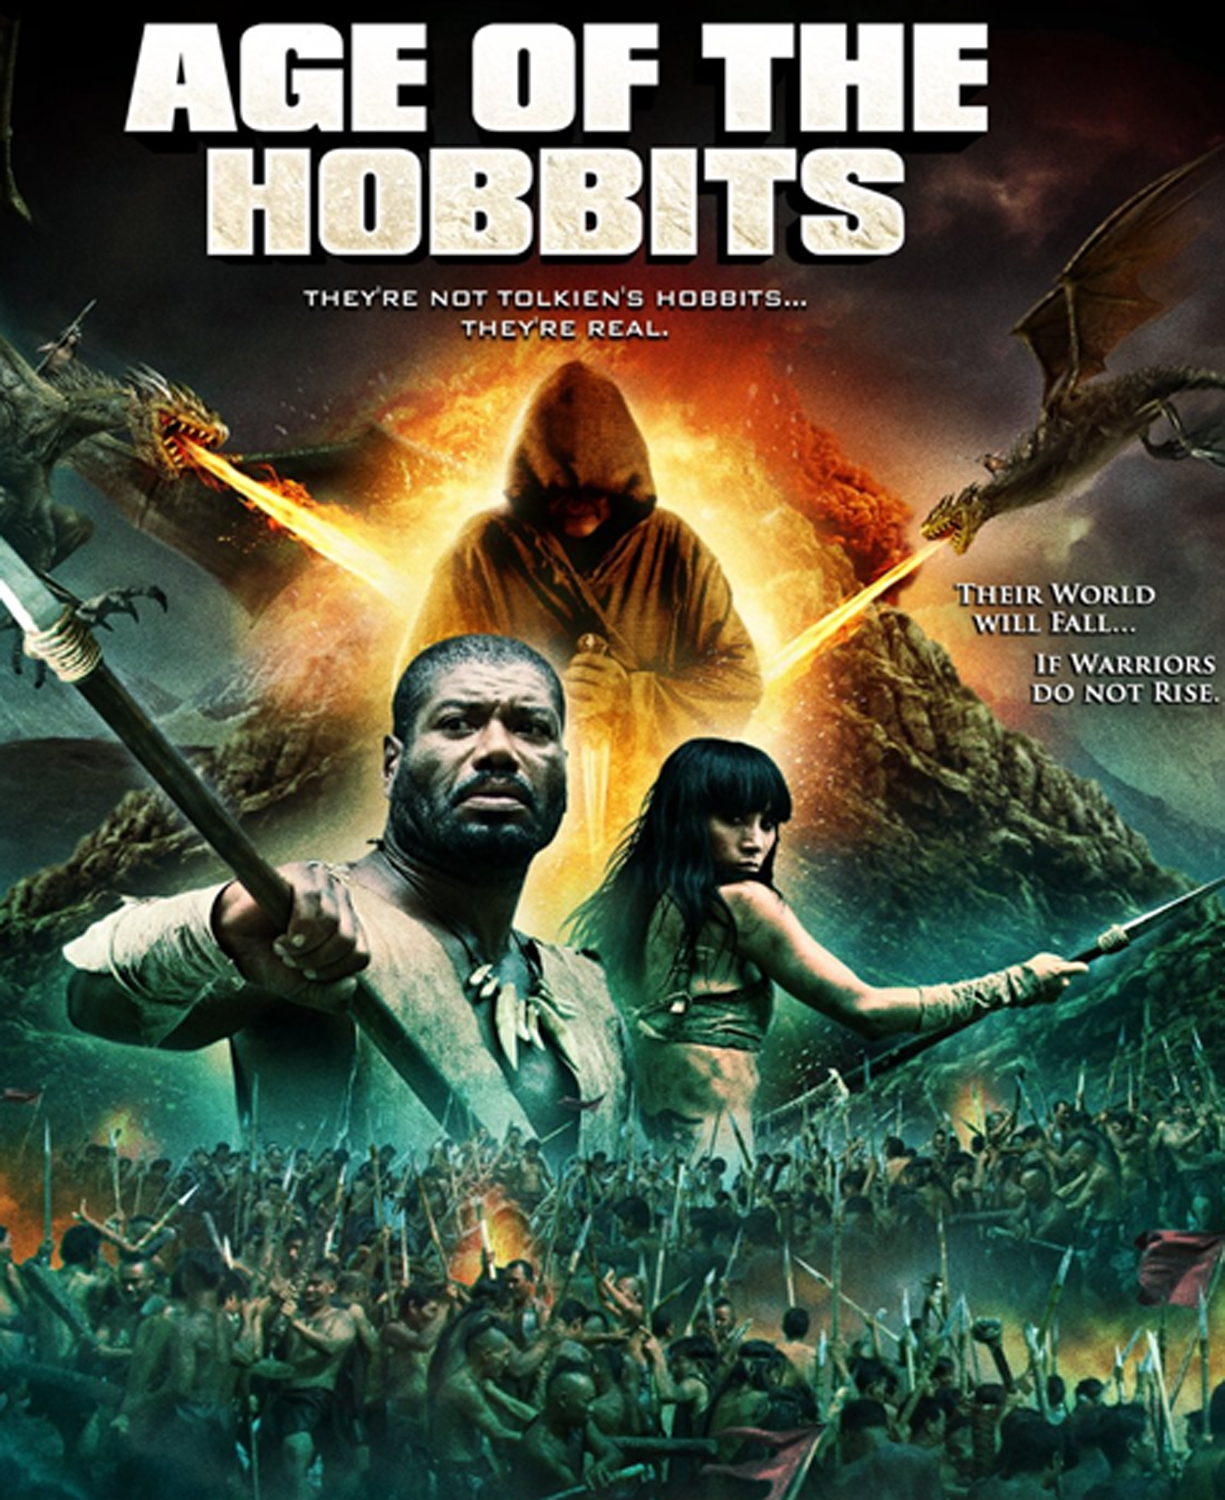 Age of the Hobbits 2012 Hindi Dual Audio 300MB BluRay ESub Download